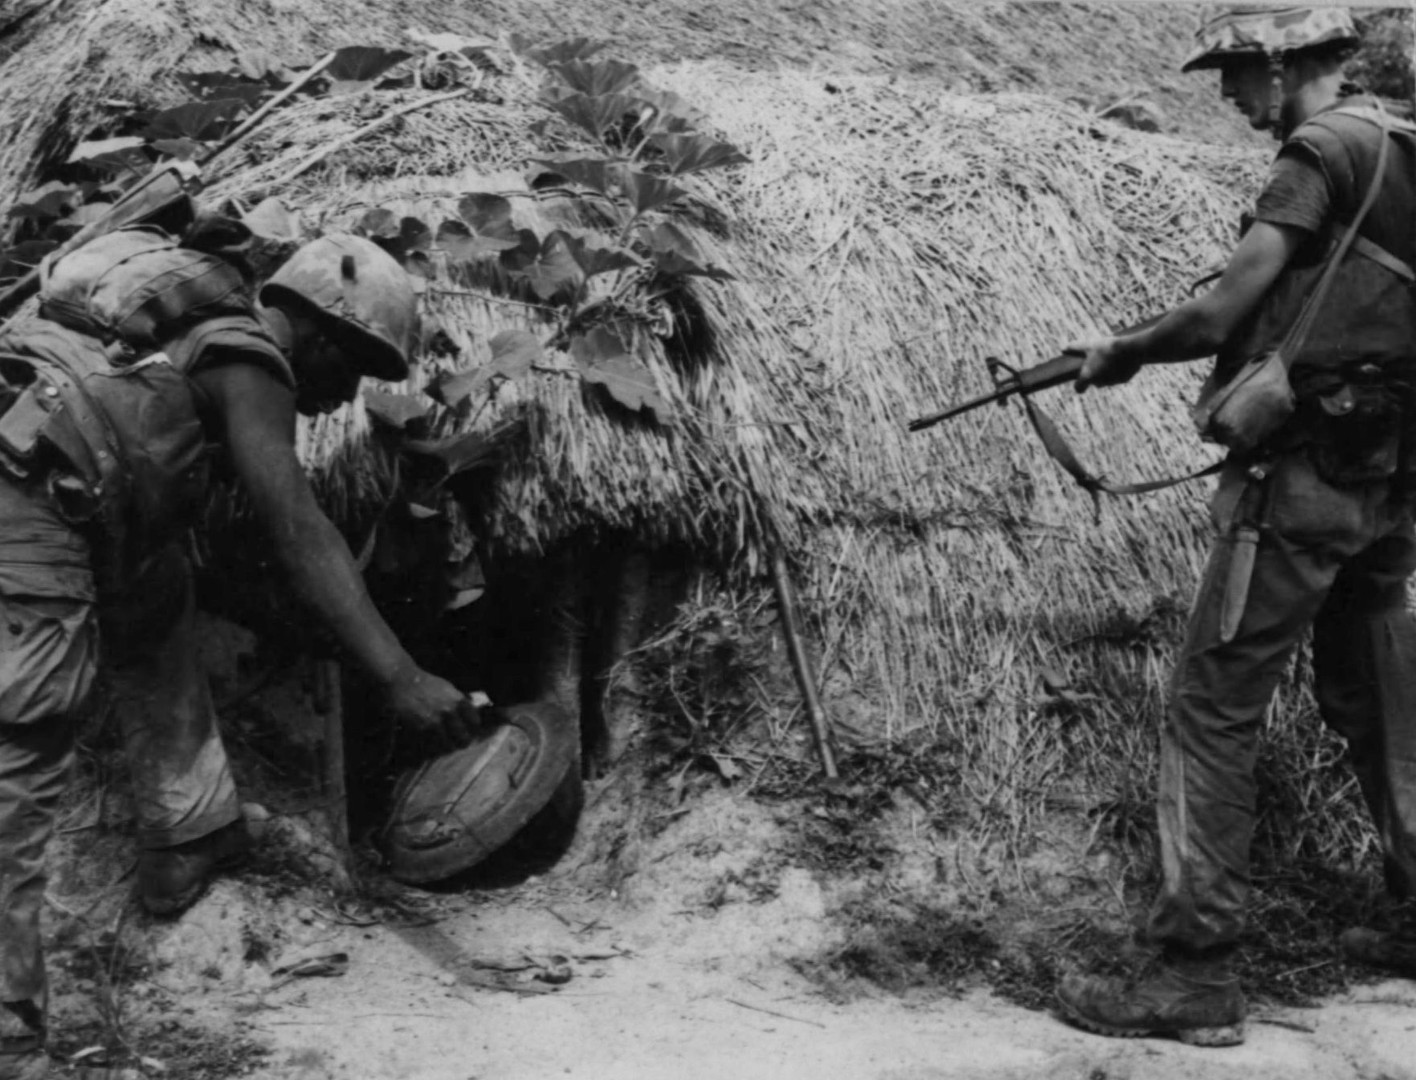 Operation Union--Private First Class [illegible] J. Hill (Schenectady, N.Y.)  of Hotel Company, 2nd Battalion, First Marines, tosses a grenade through an entrance of a Viet Cong hut while Private First Class Angelo D. [illegible] (Rocky Hill, Conn.) prepares for any Viet Cong resistance.  Source: National Archives photo no. 26387681